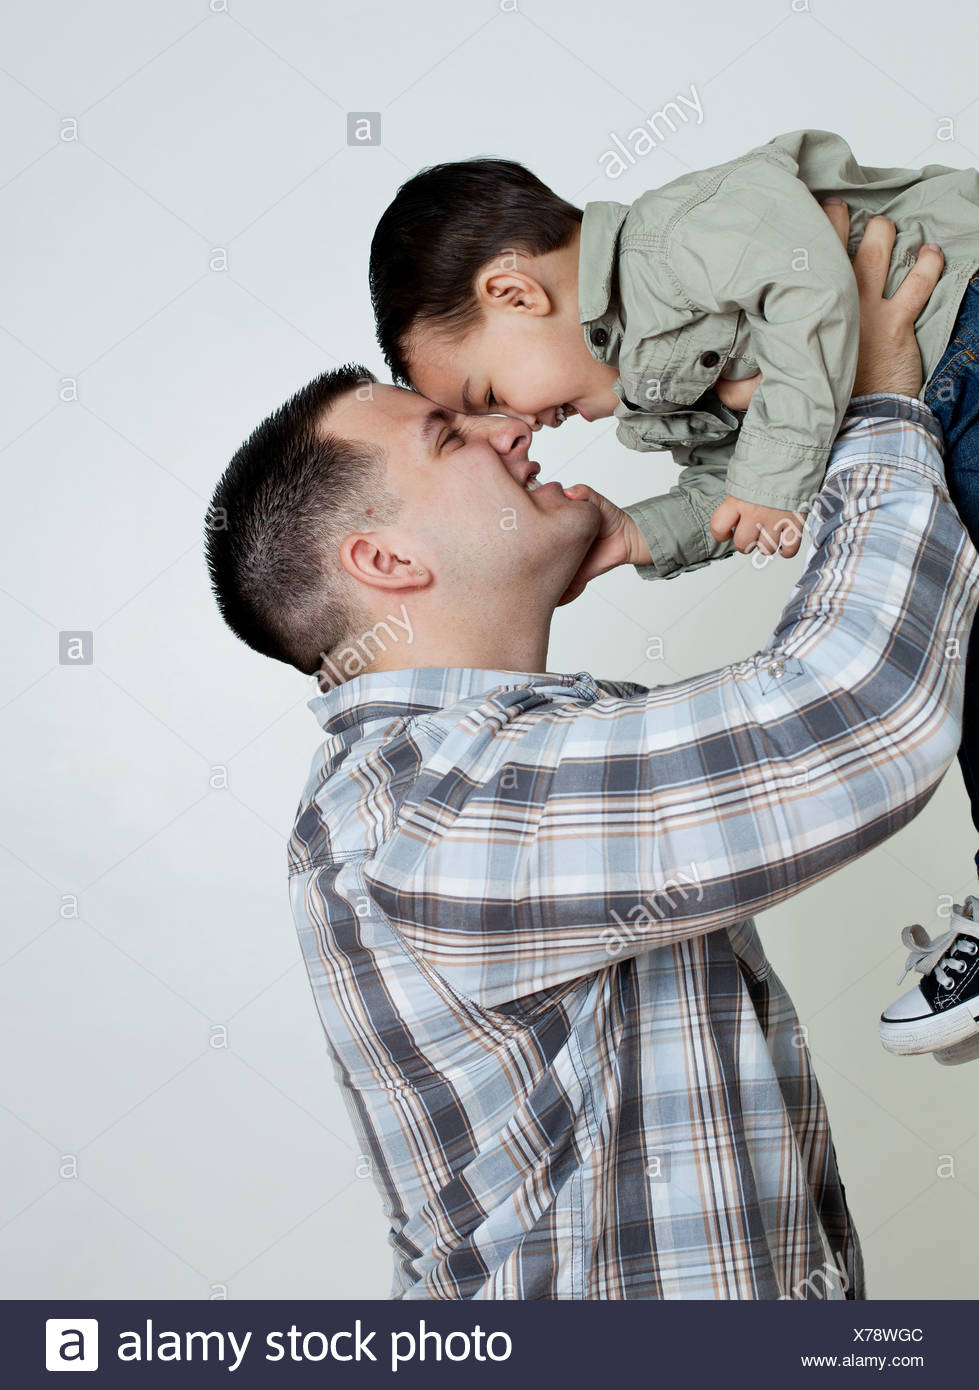 Young man holding son in the air, studio shot - Stock Image